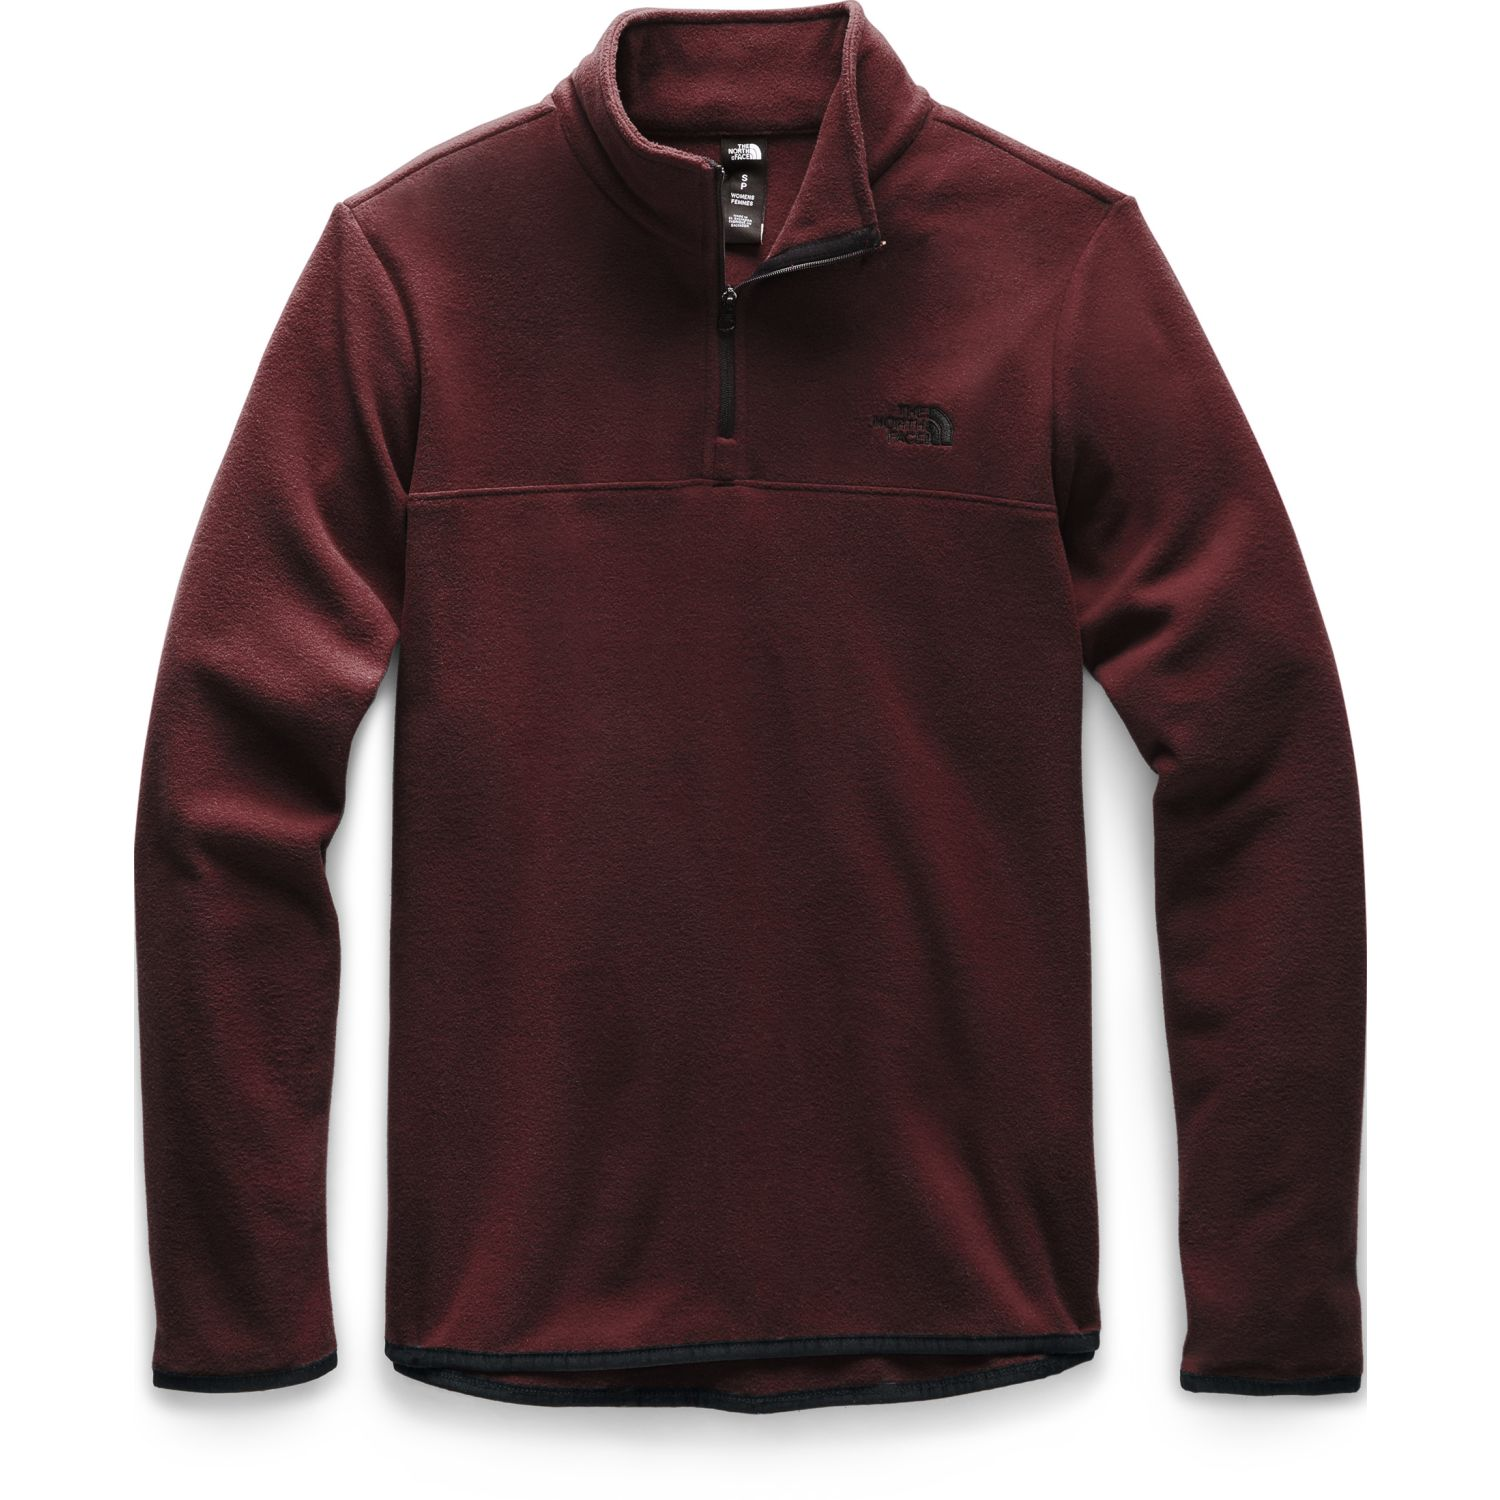 The North Face w tka glacier 1/4 zip Vino Pullovers